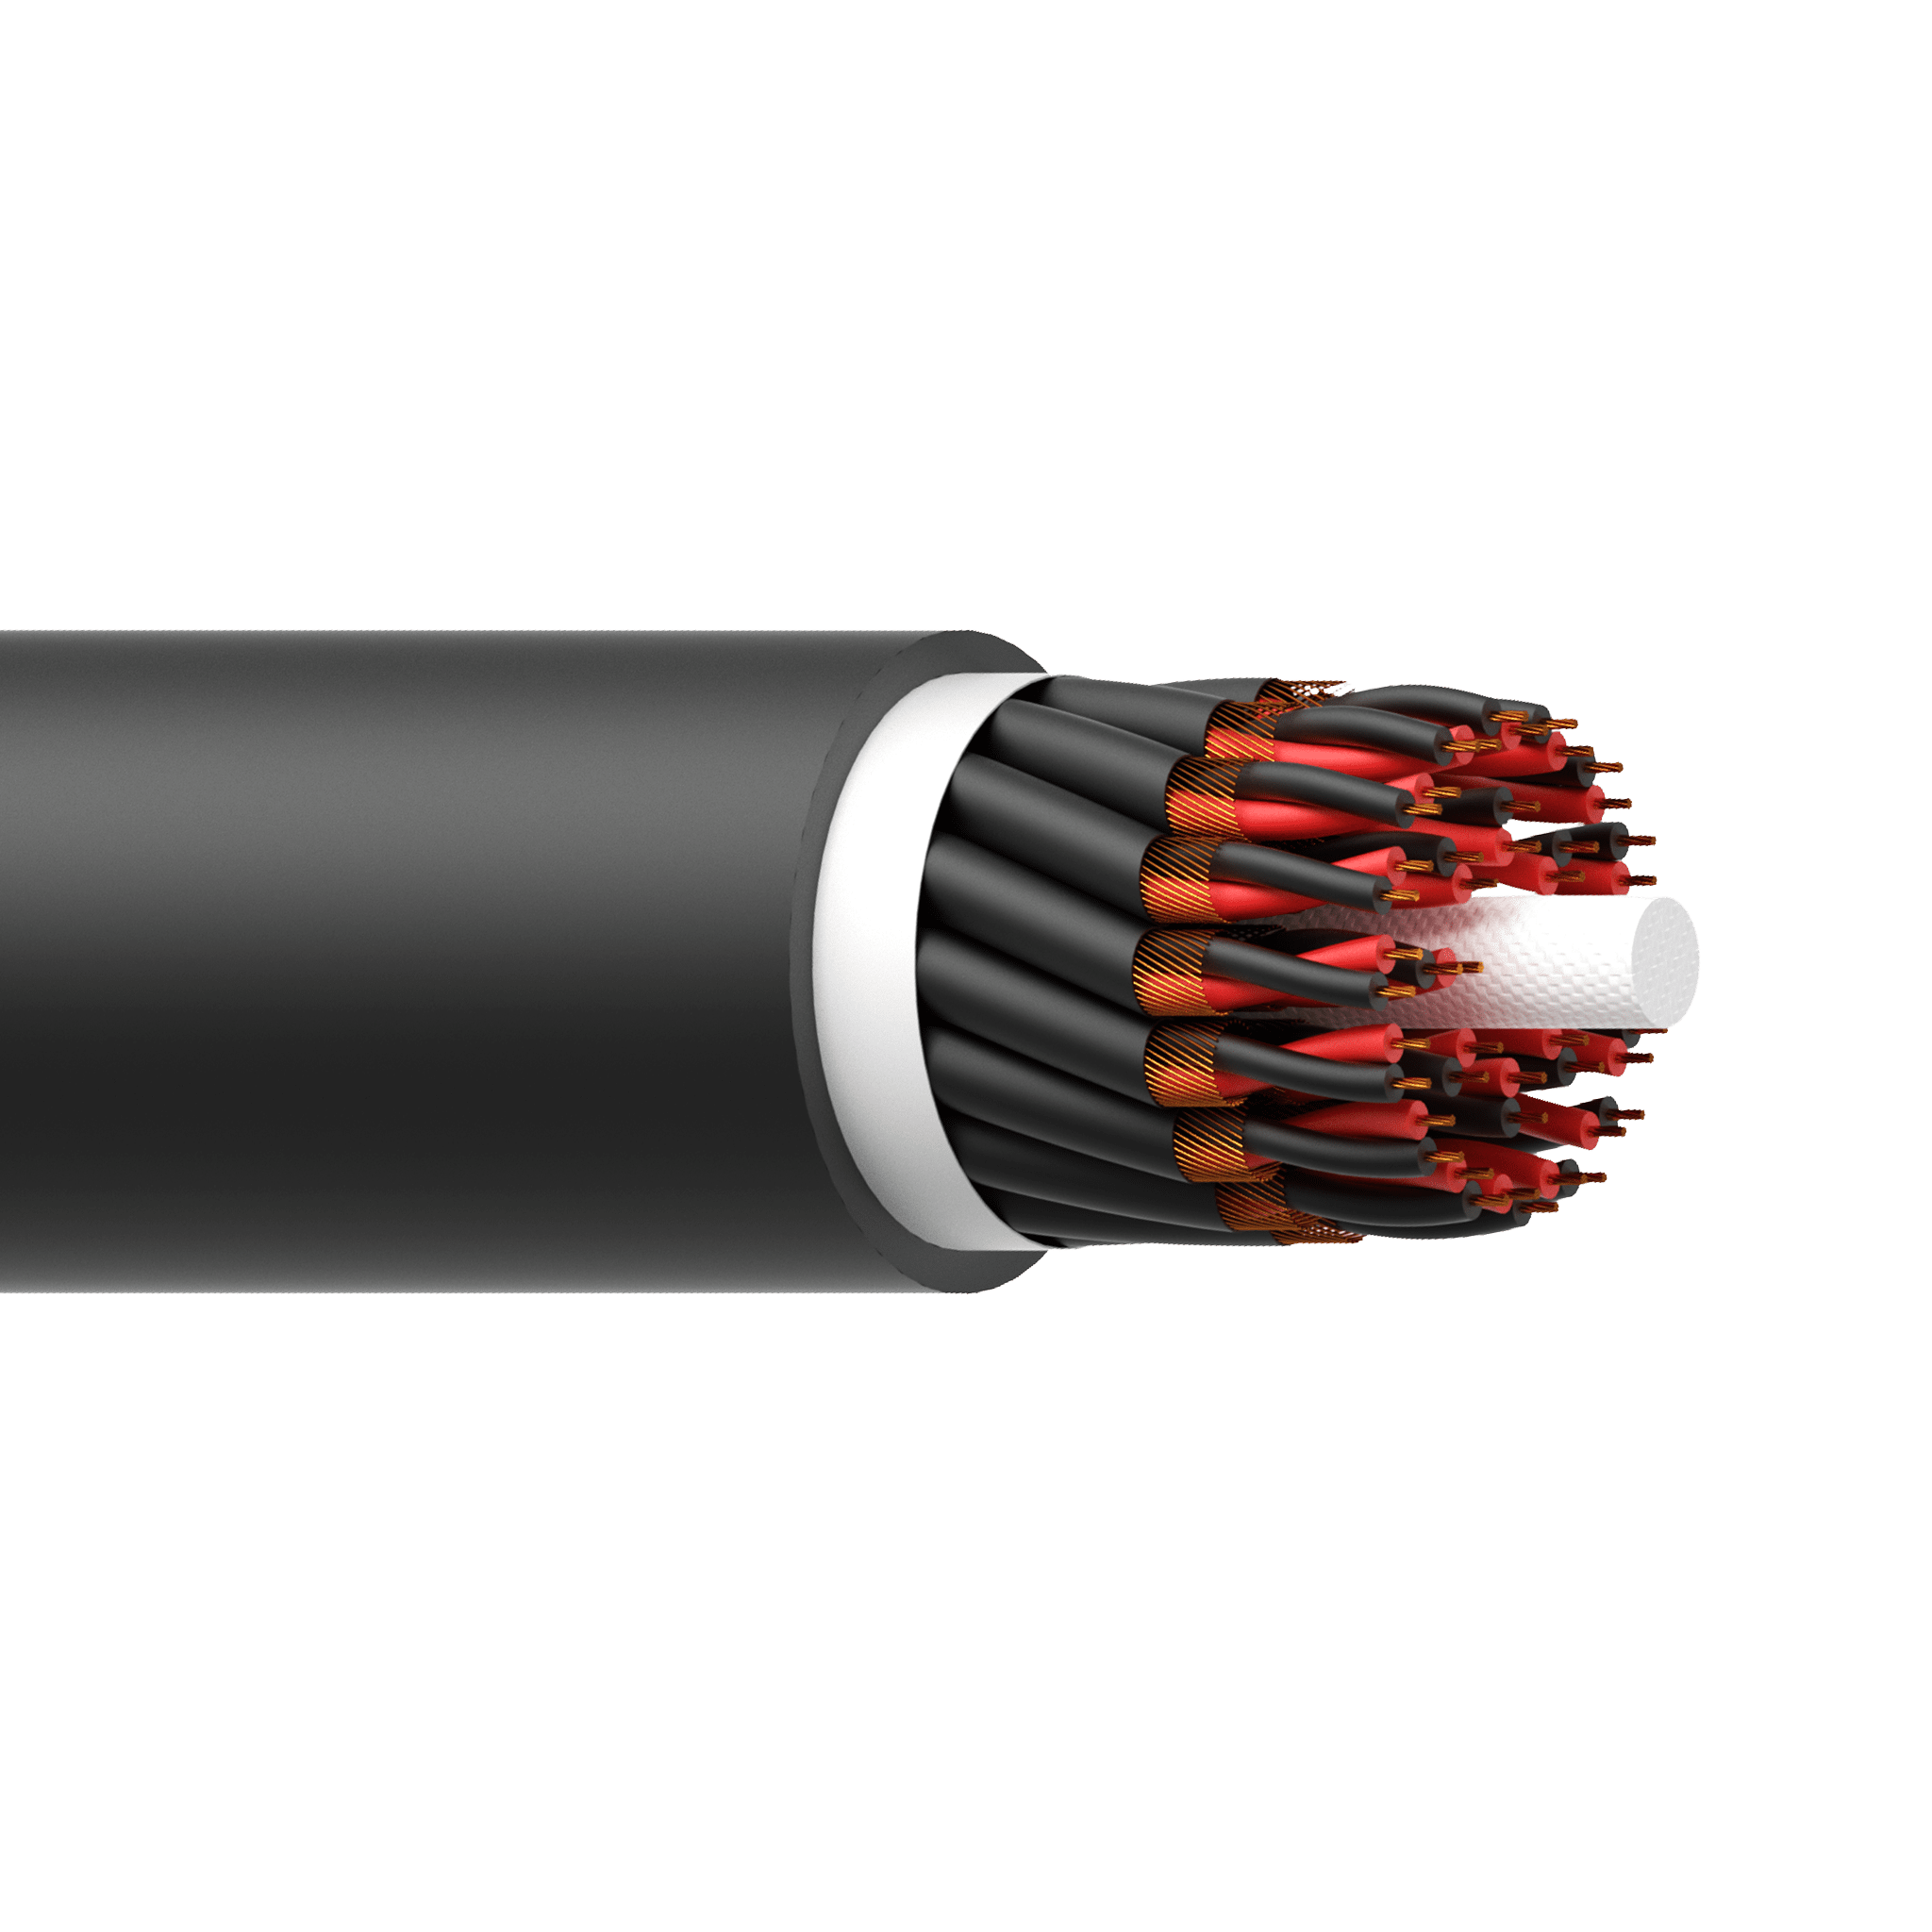 MCM124 - Balanced signal cable - 24 pairs x 0.125 mm² - 26 AWG